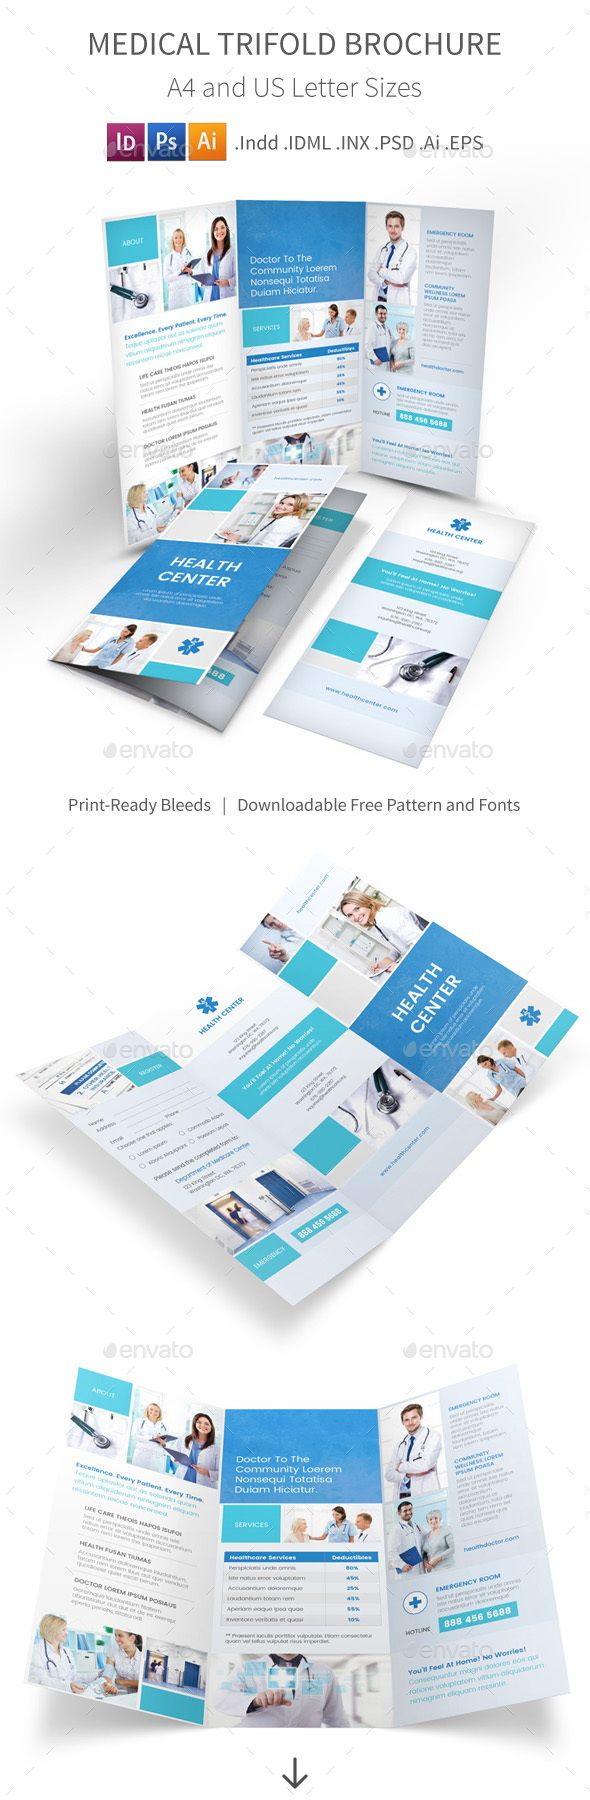 Medical Trifold Brochure 5 | Ai illustrator, Brochure template and ...